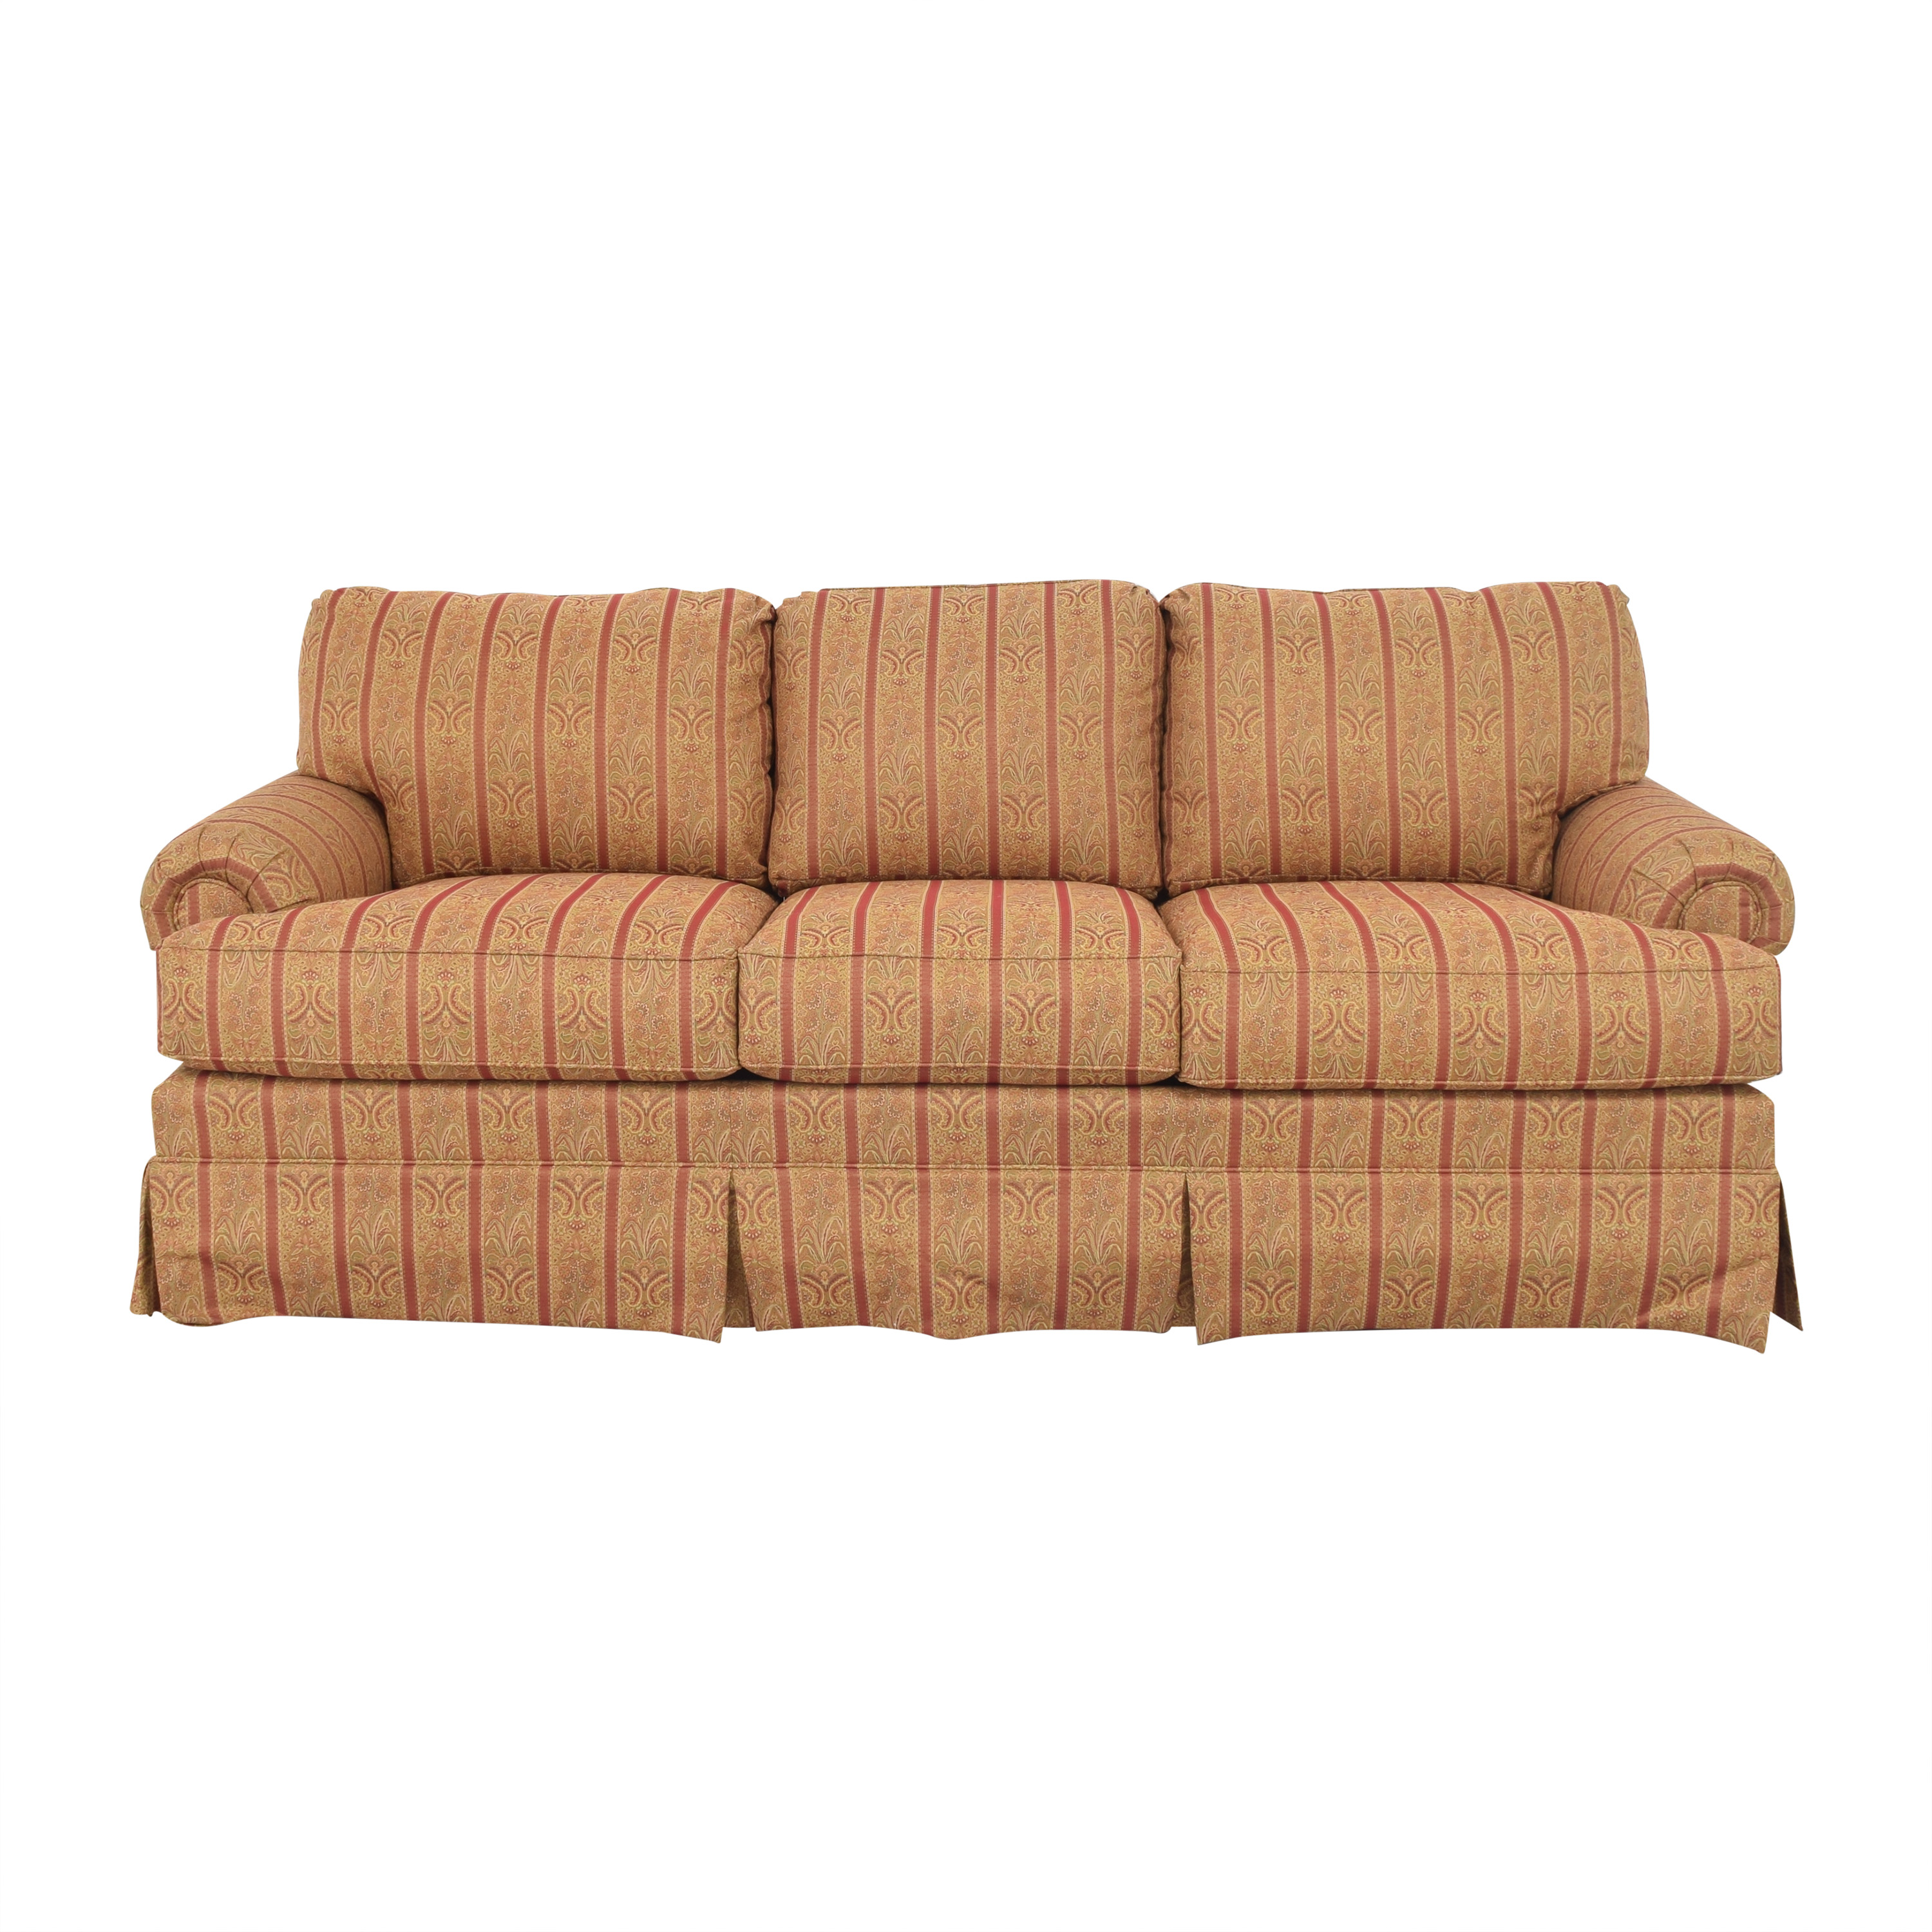 Thomasville Thomasville Skirted Three Cushion Sofa second hand